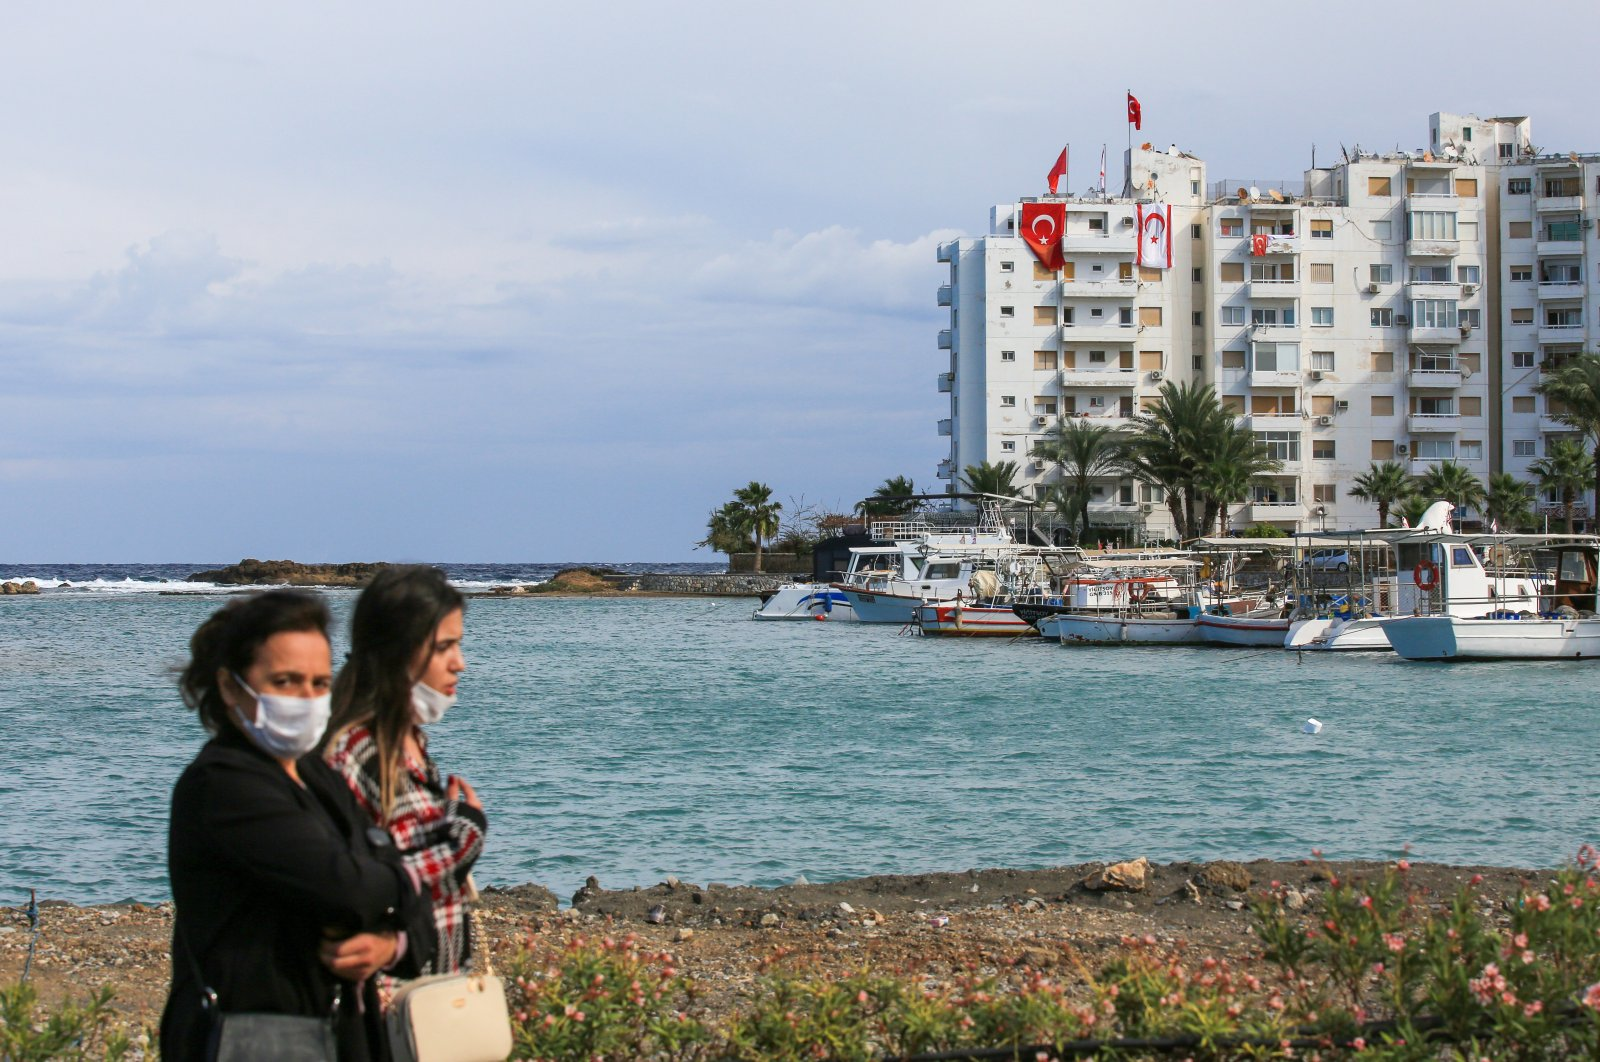 Women walk in the port city of Famagusta near the town of Maraş (Varosha), the Turkish Republic of Northern Cyprus (TRNC), Nov. 15, 2020. (Getty Images)